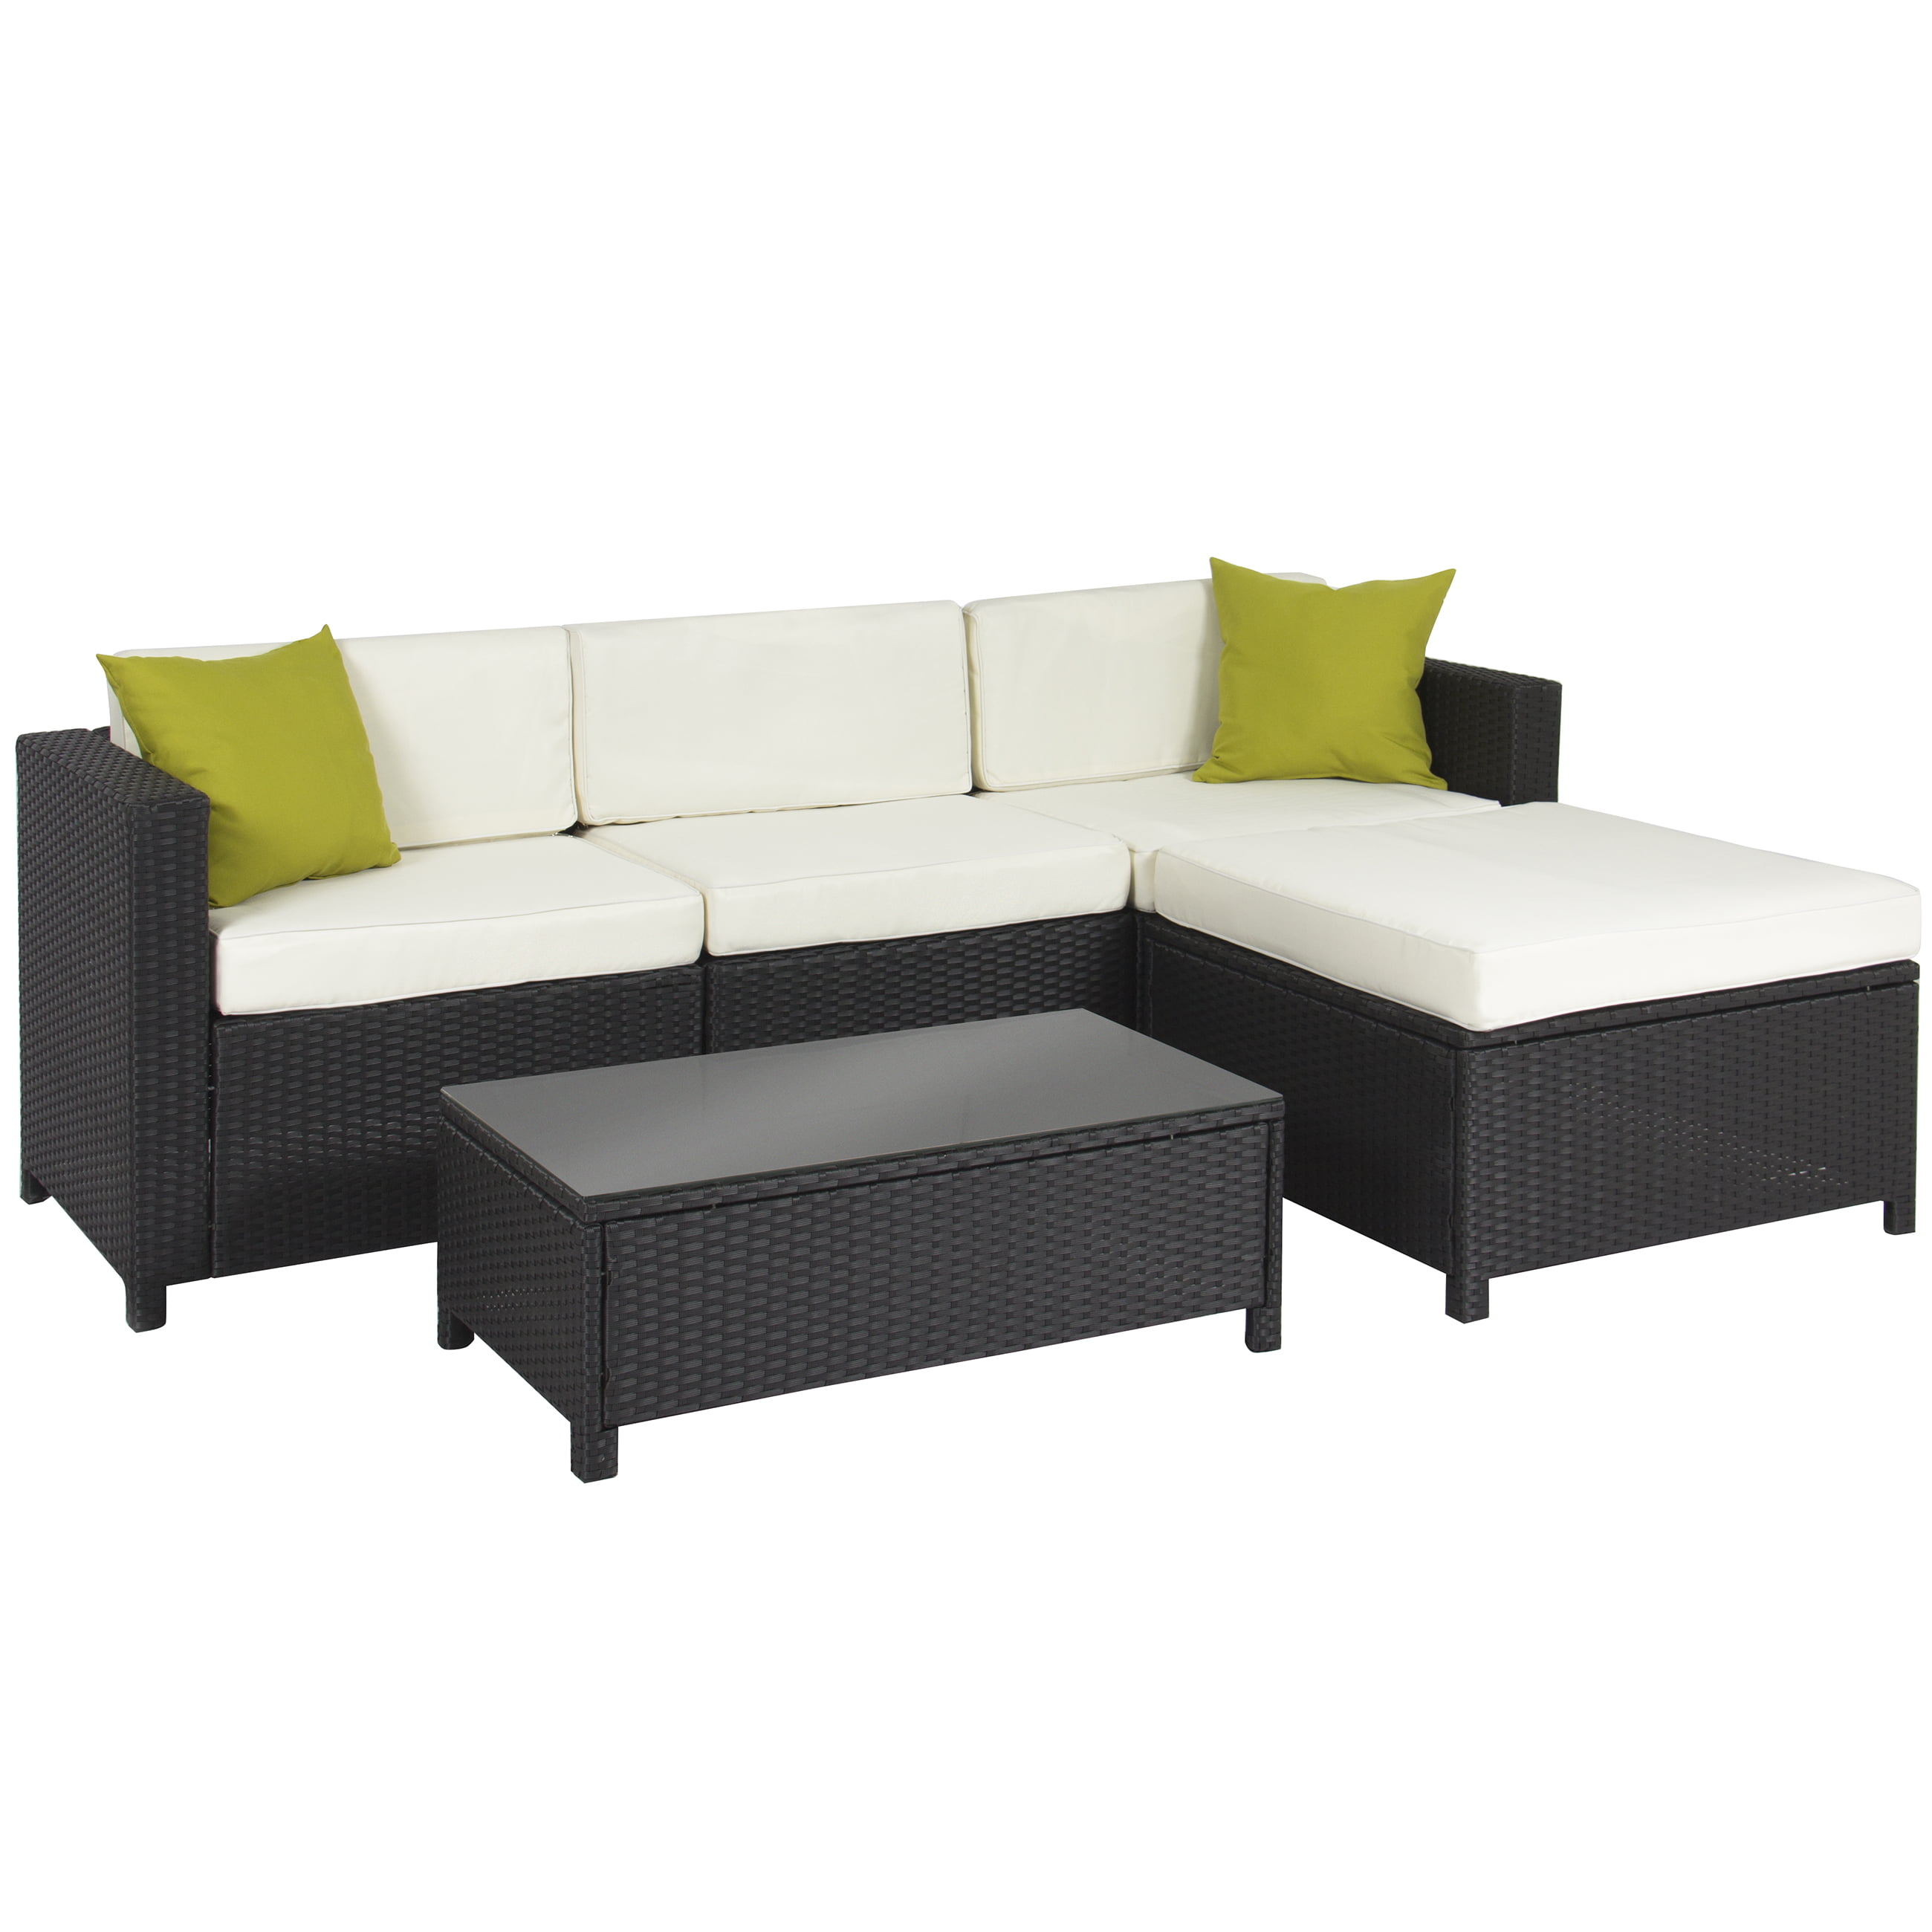 Genial Best Choice Products 5 Piece Modular Wicker Patio Sectional Set W/ Glass  Tabletop, Removable Cushion Covers   Black   Walmart.com